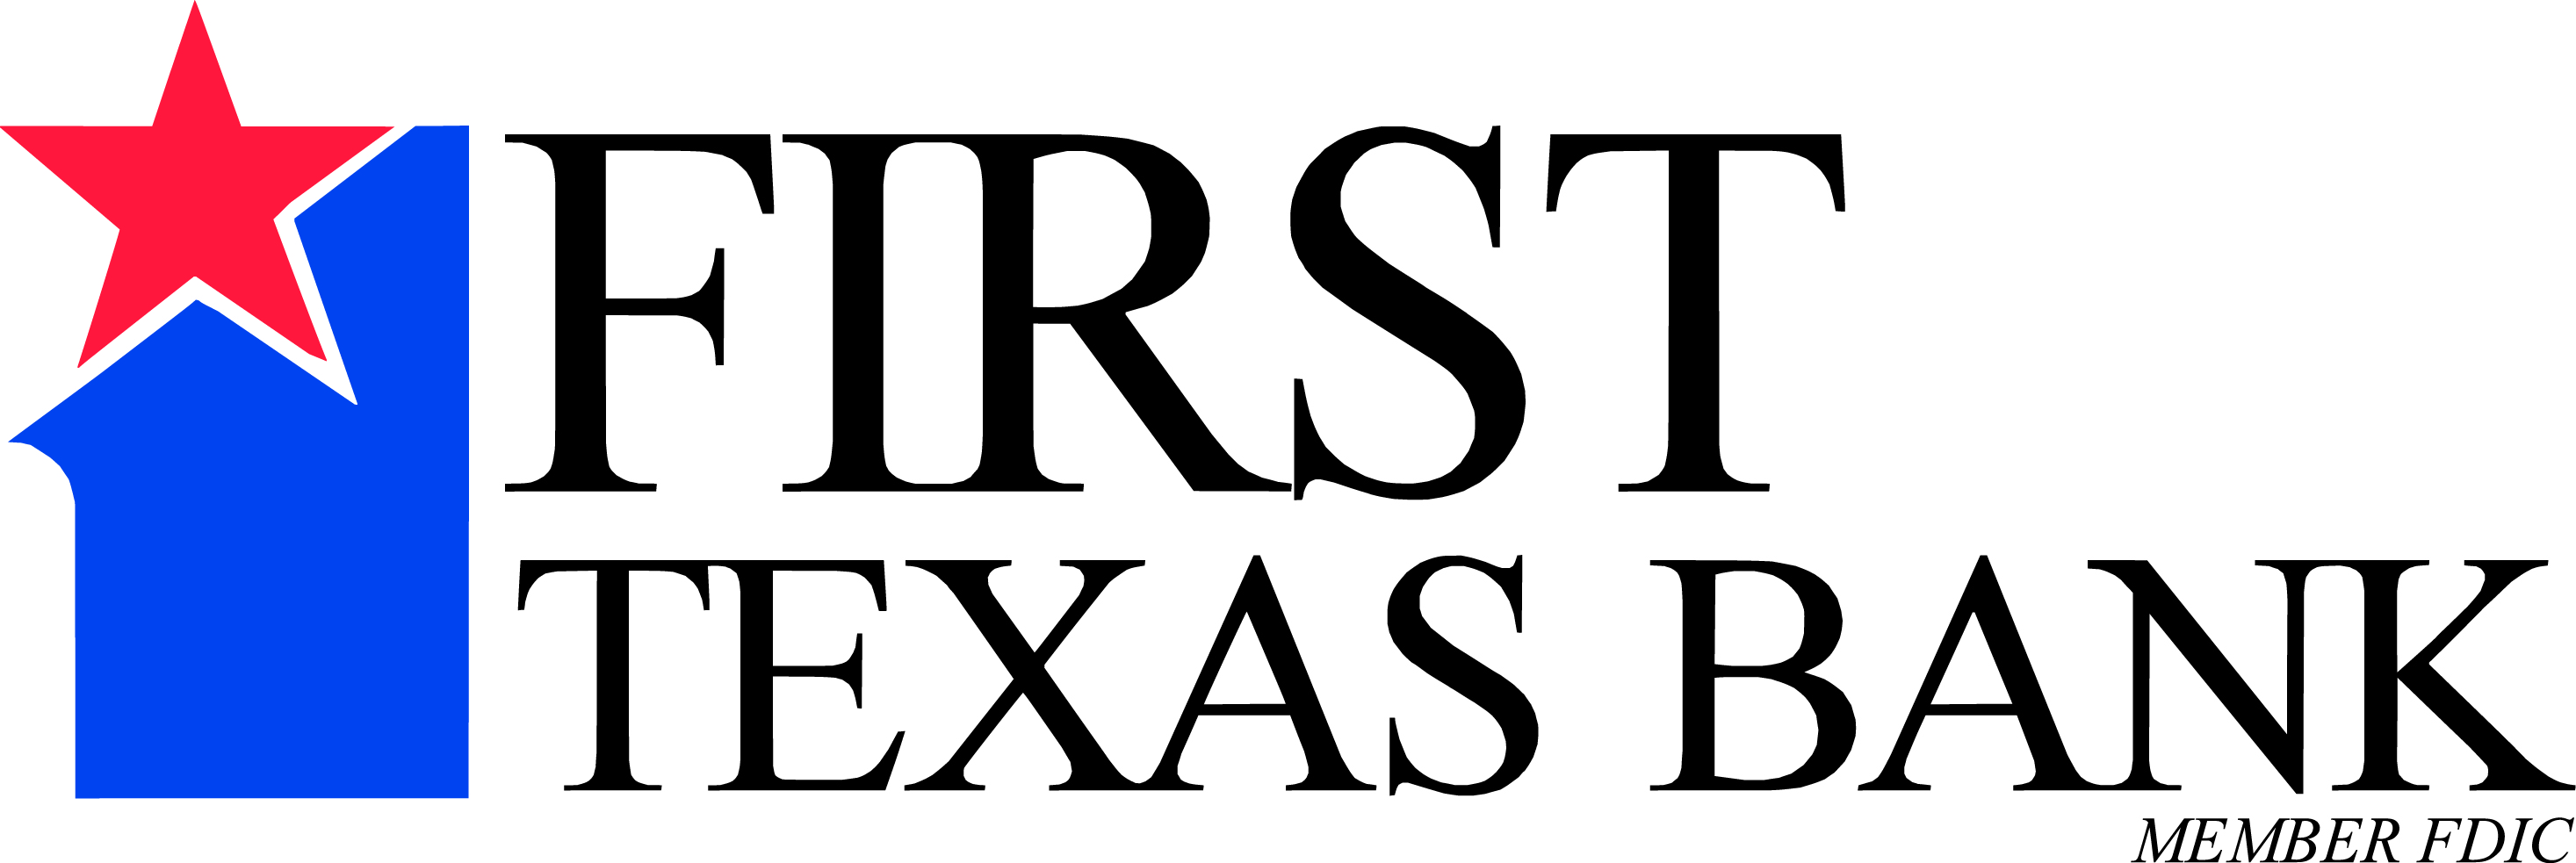 First Texas Bank logo